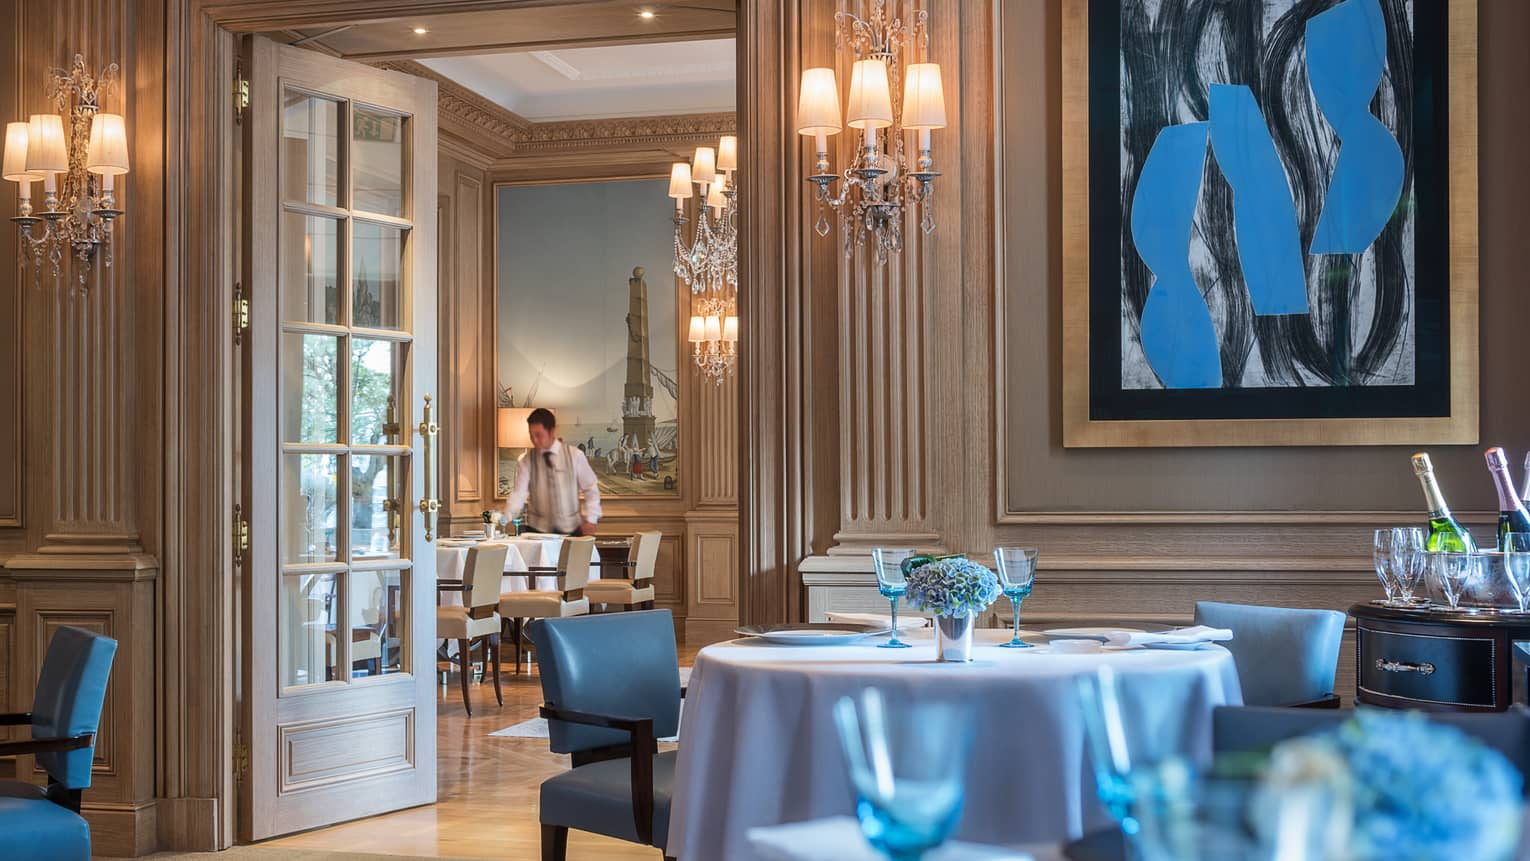 Il Lago dining room with high ceilings, cream walls and bright blue painting, chairs, glassware